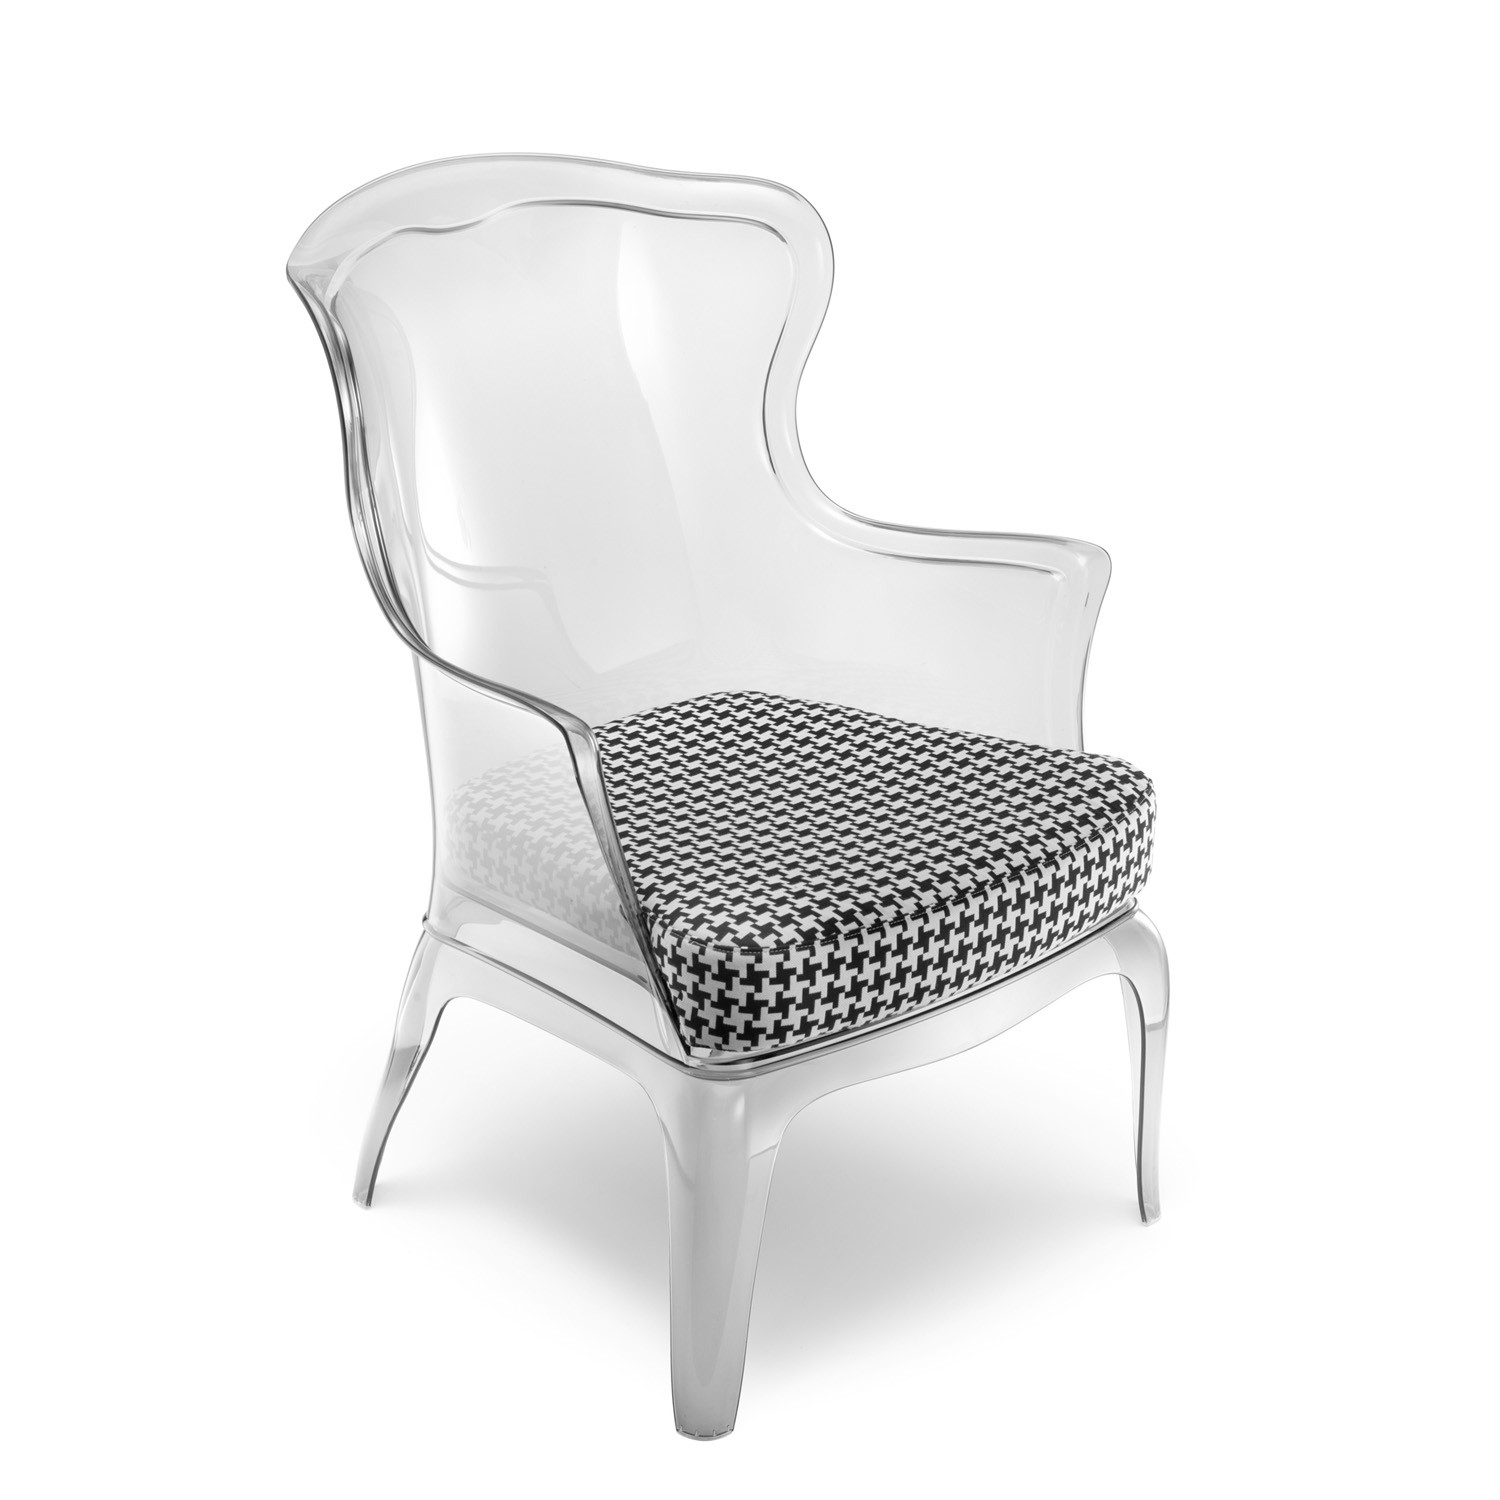 Pasha Lounge Soft Armchair